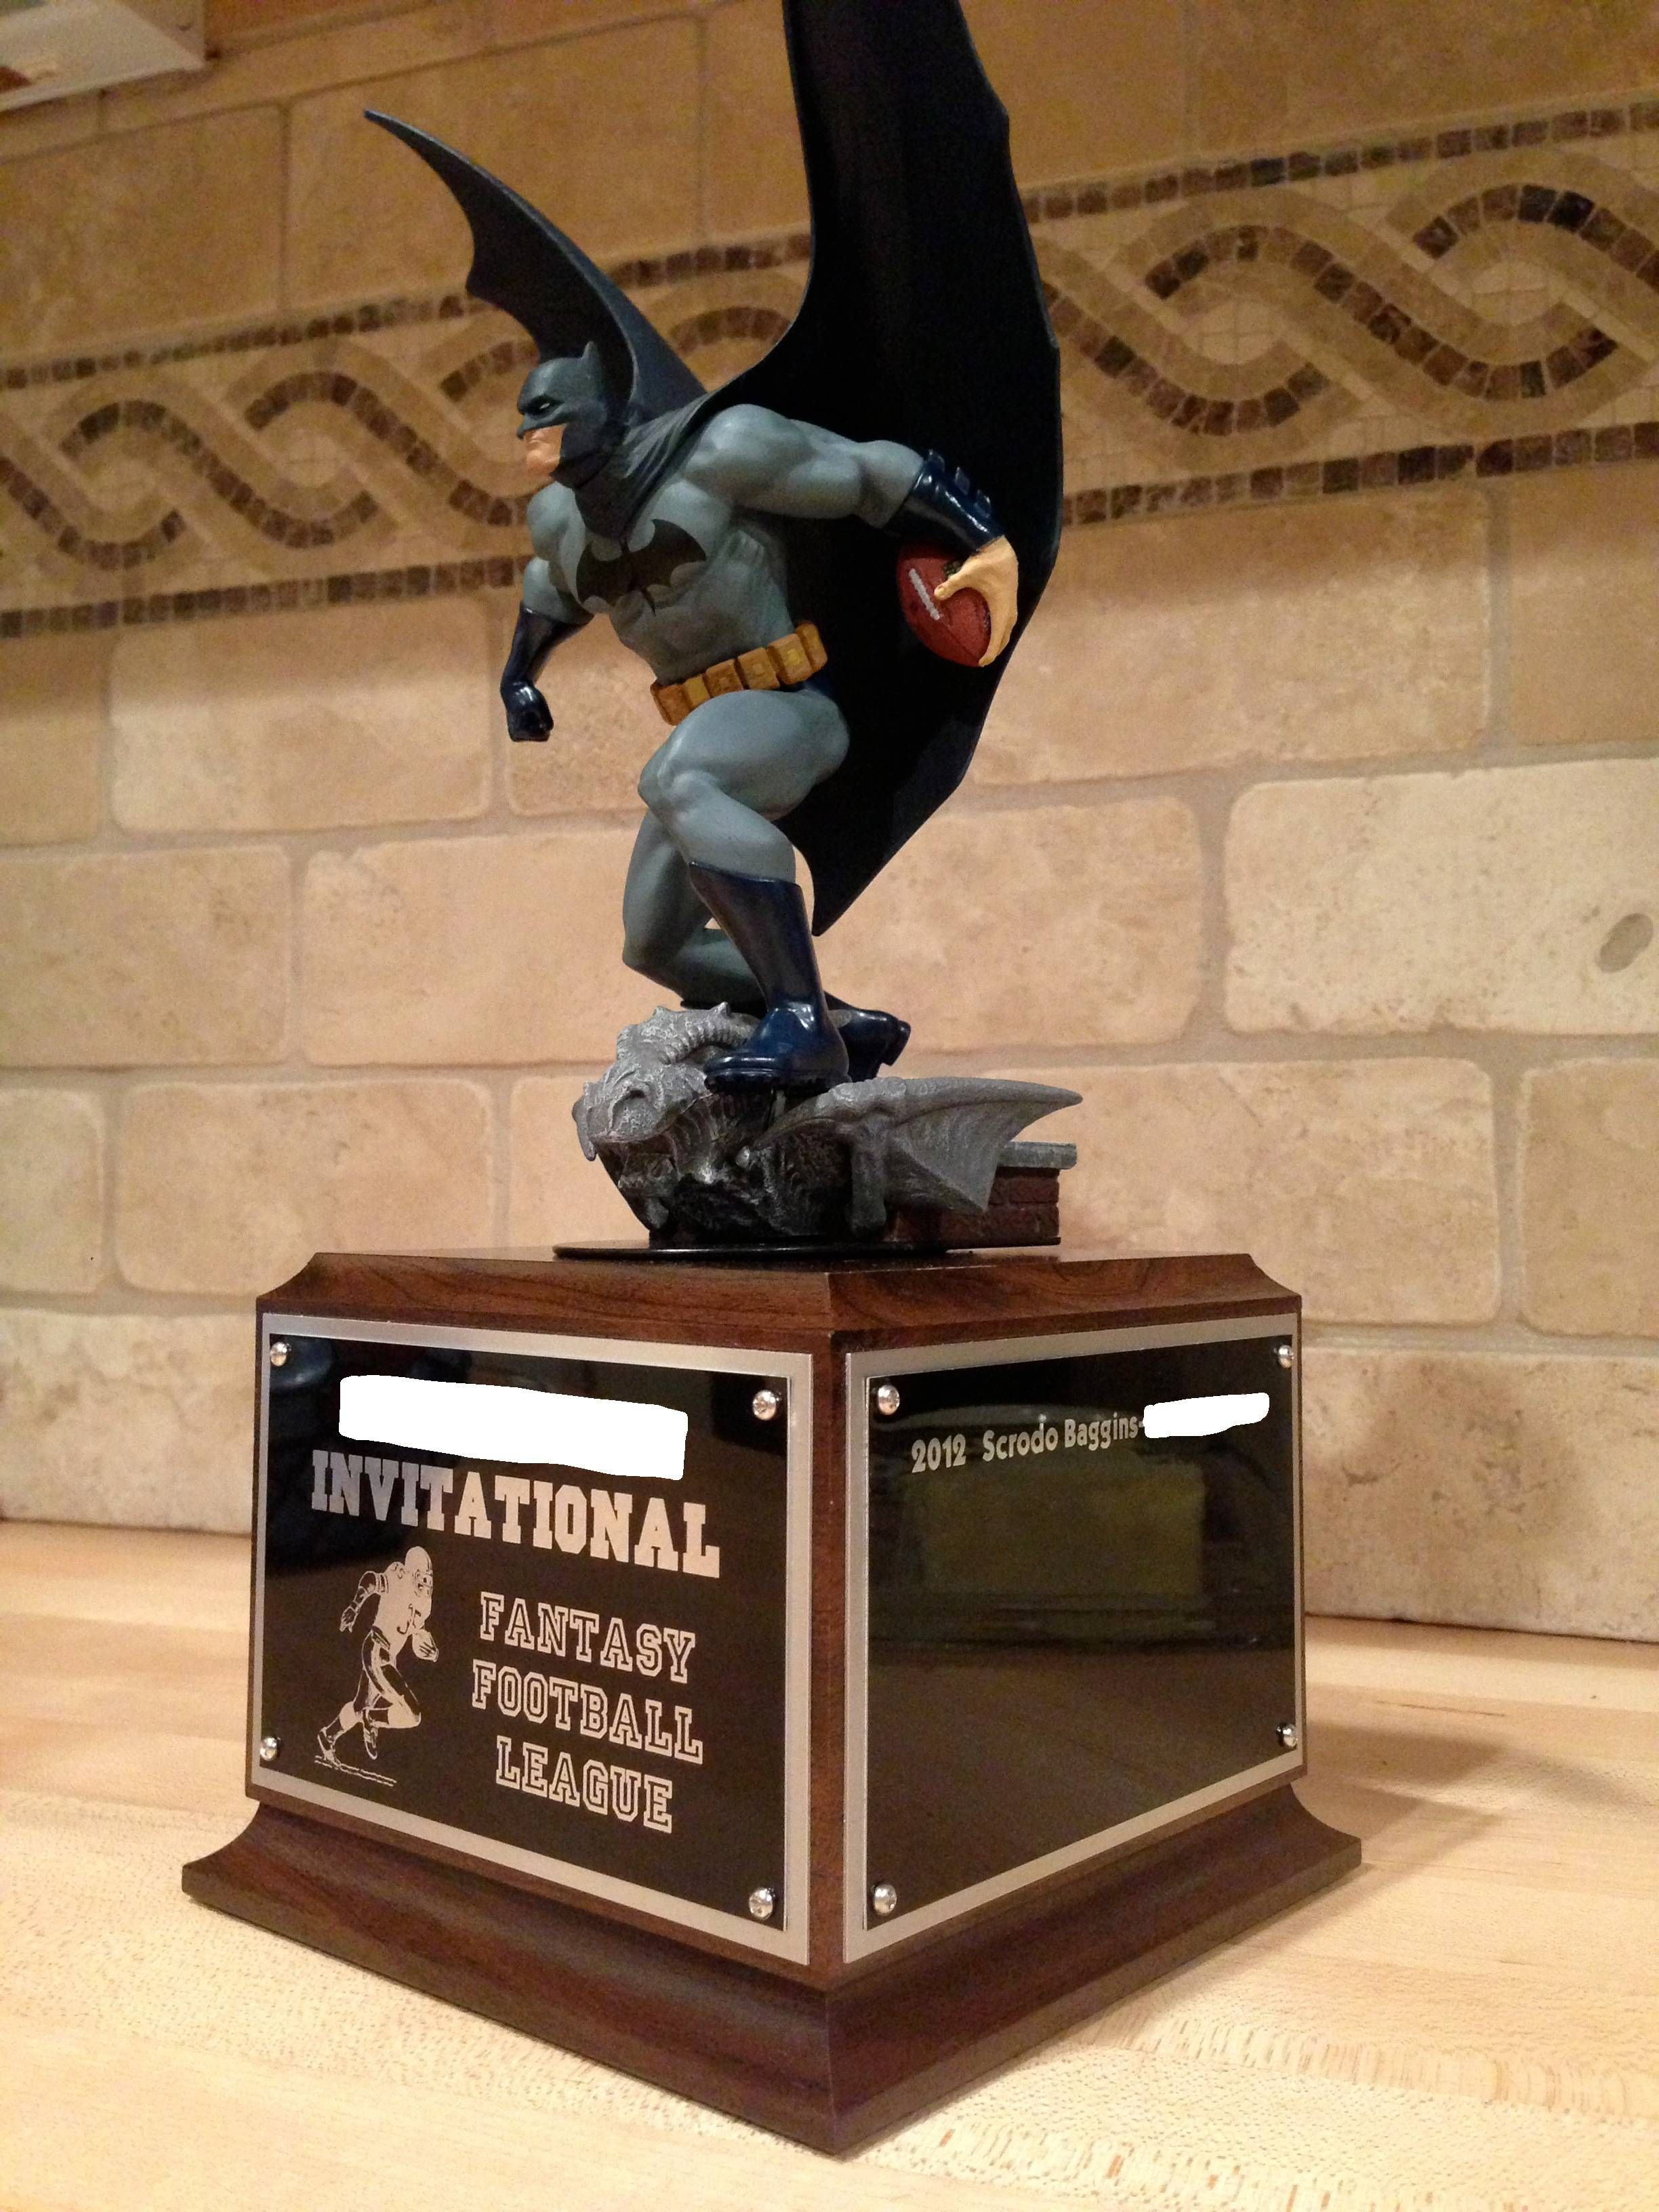 Best Fantasy Football Trophy I Can Find I Want To Make